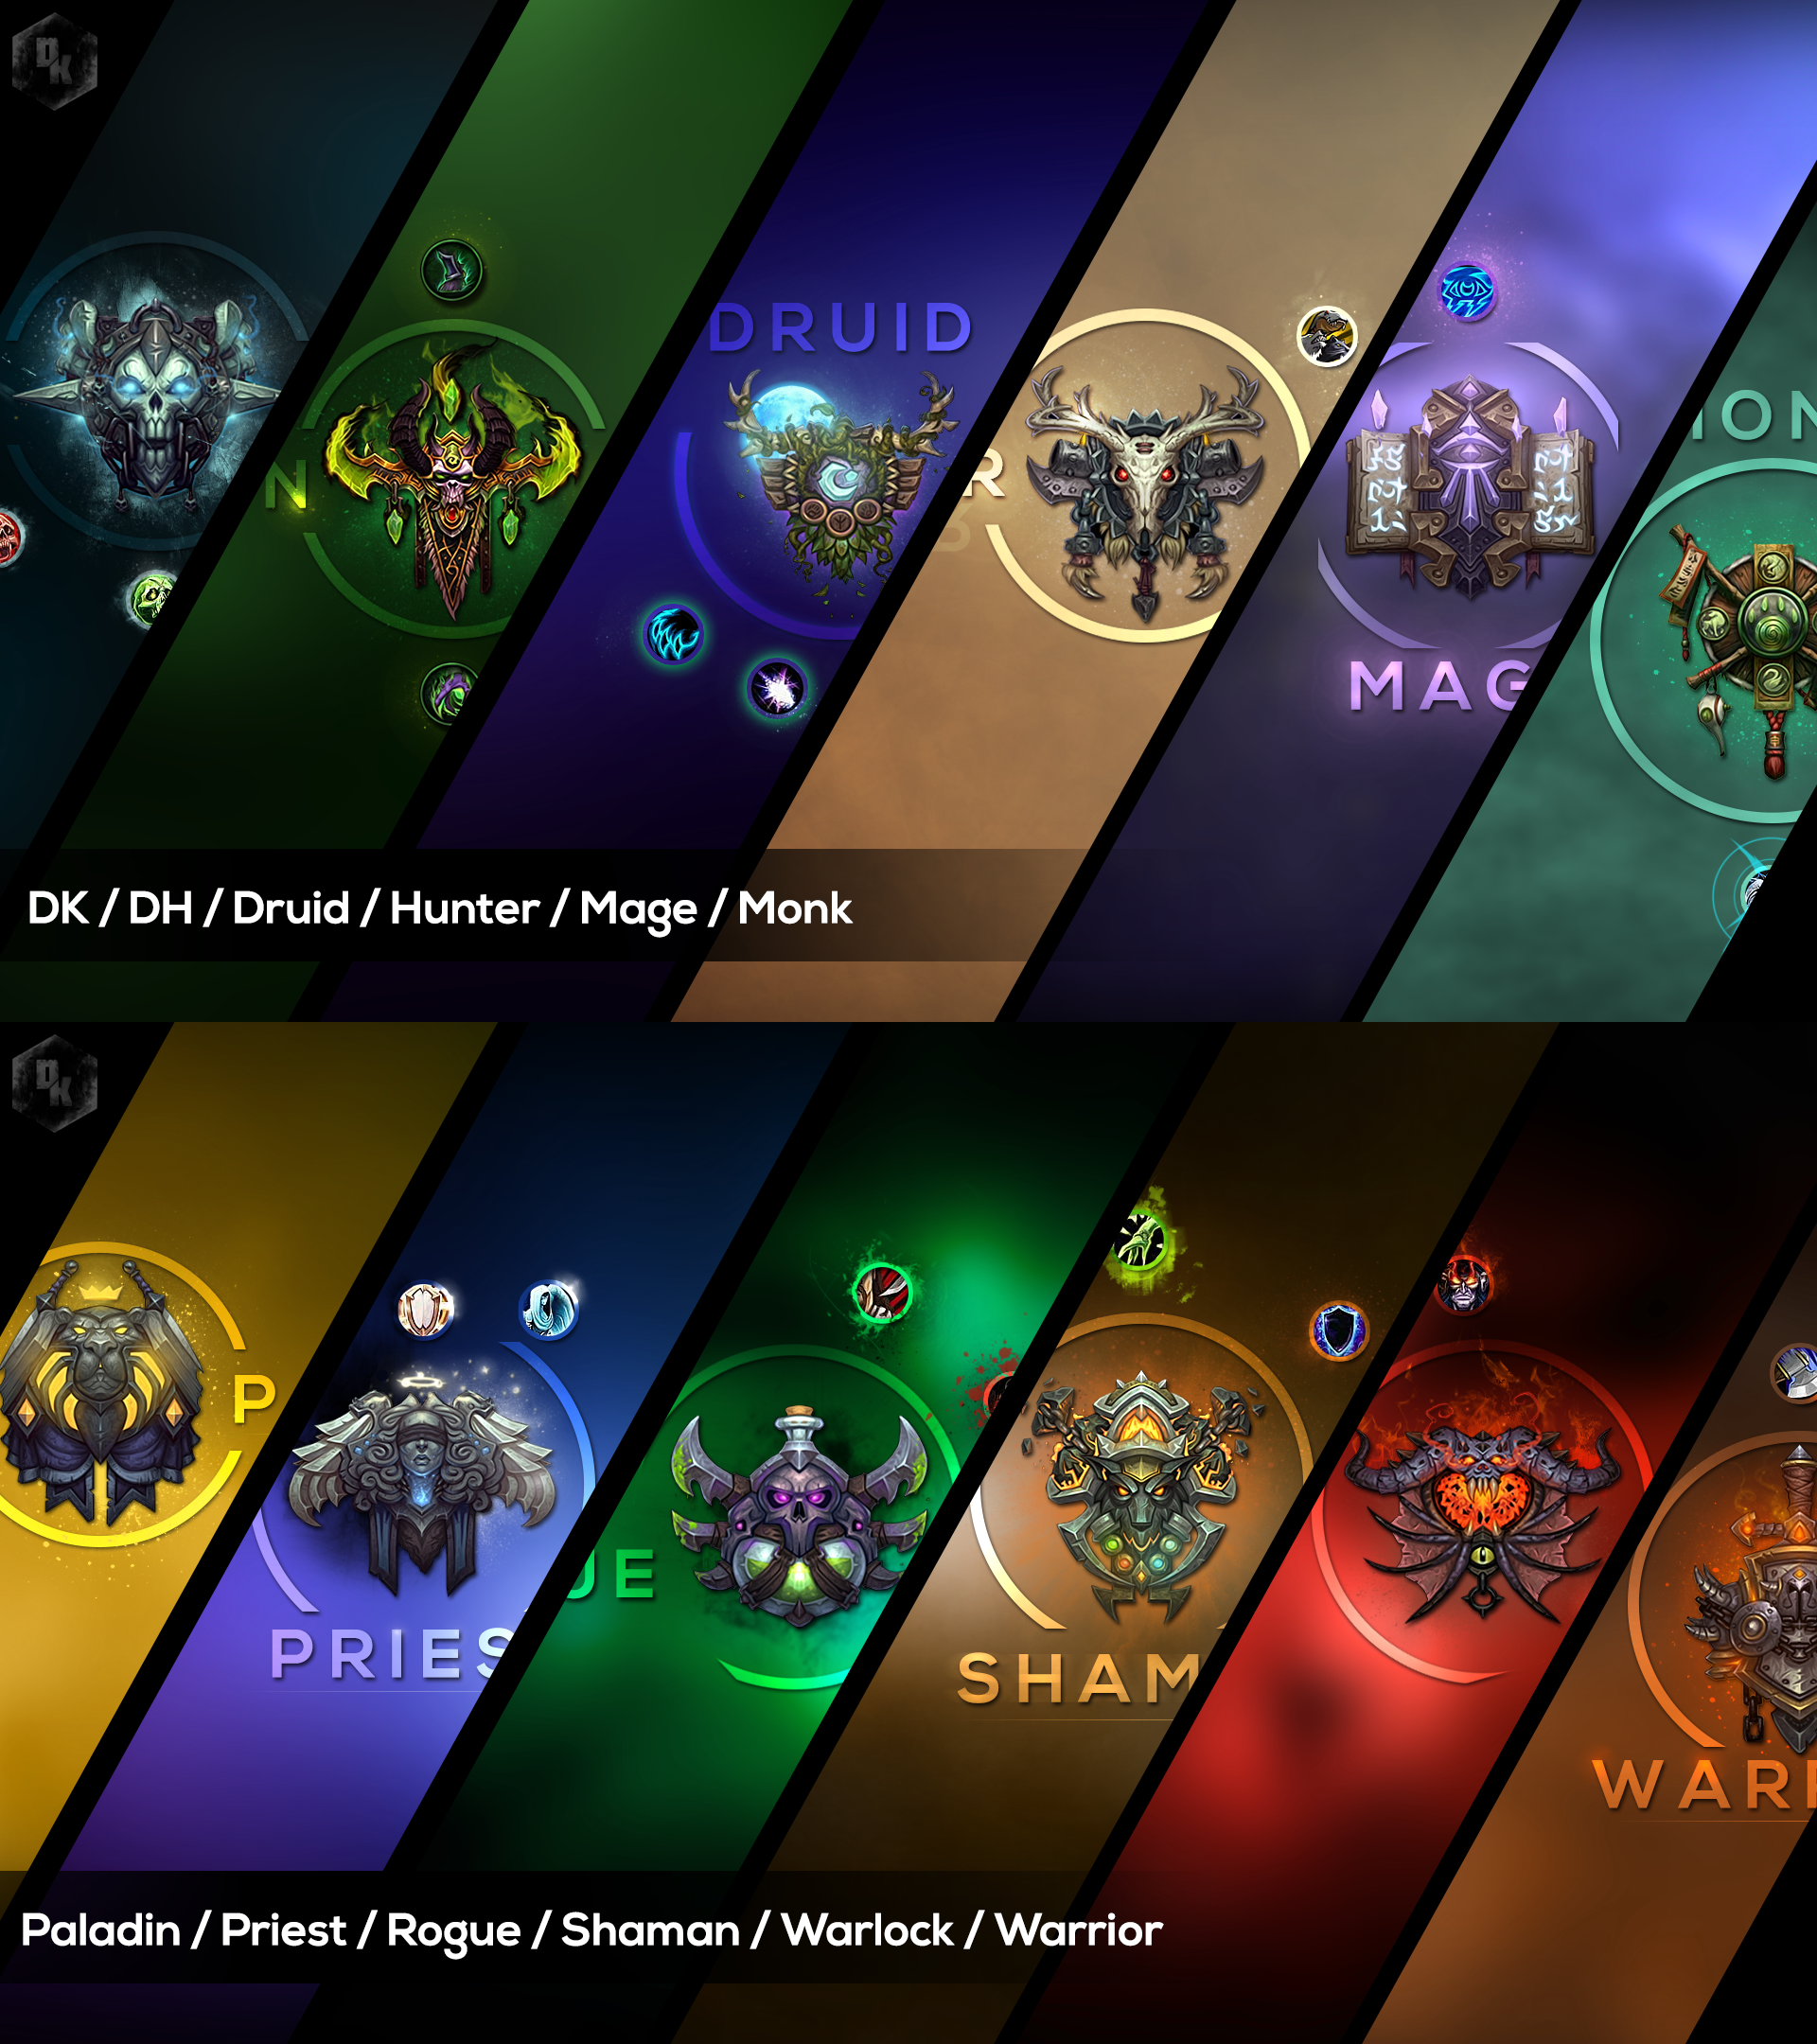 WoW Wallpaper Compilation by Xael-Design on DeviantArt